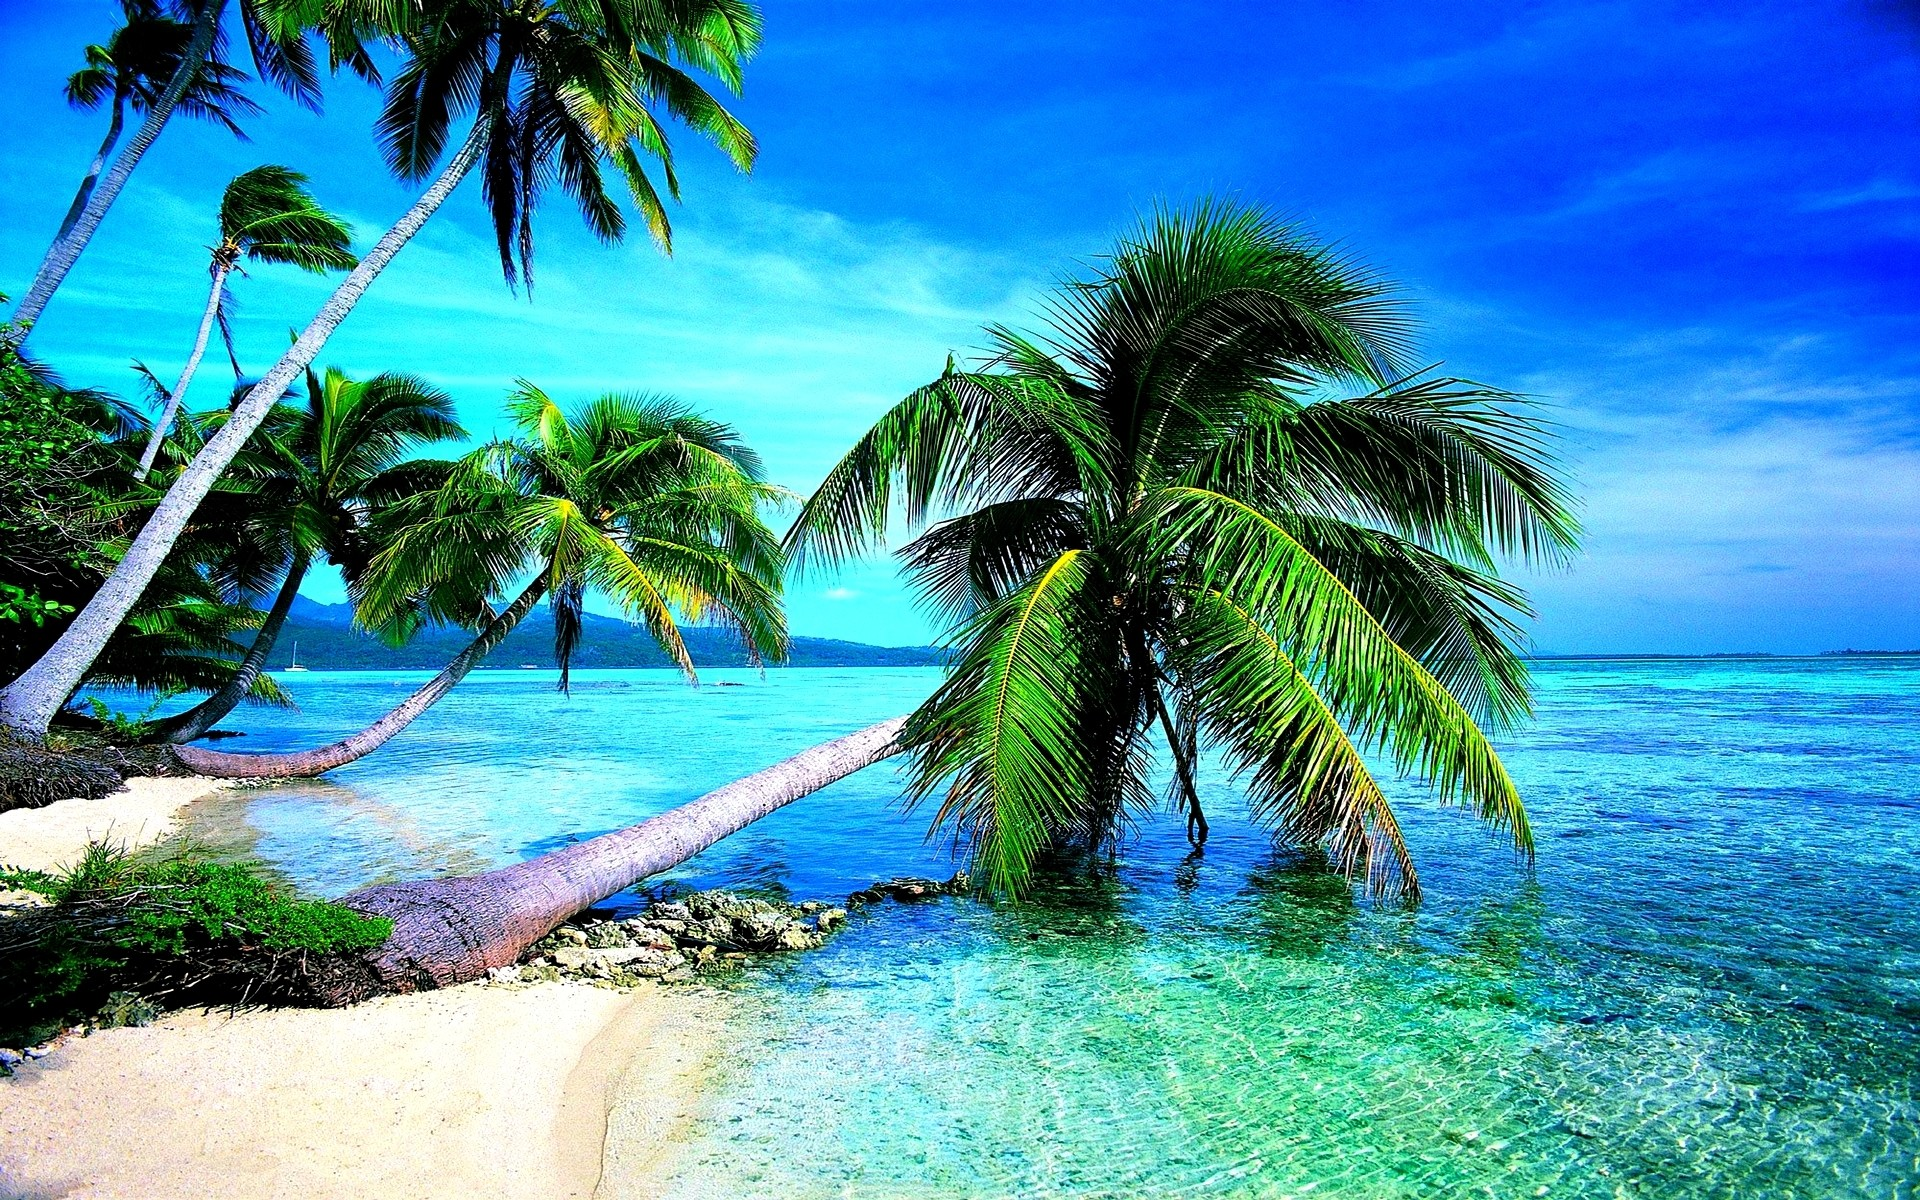 desktop backgrounds tropical – desktop backgrounds tropical HD Download  Download desktop backgrounds tropical | from the